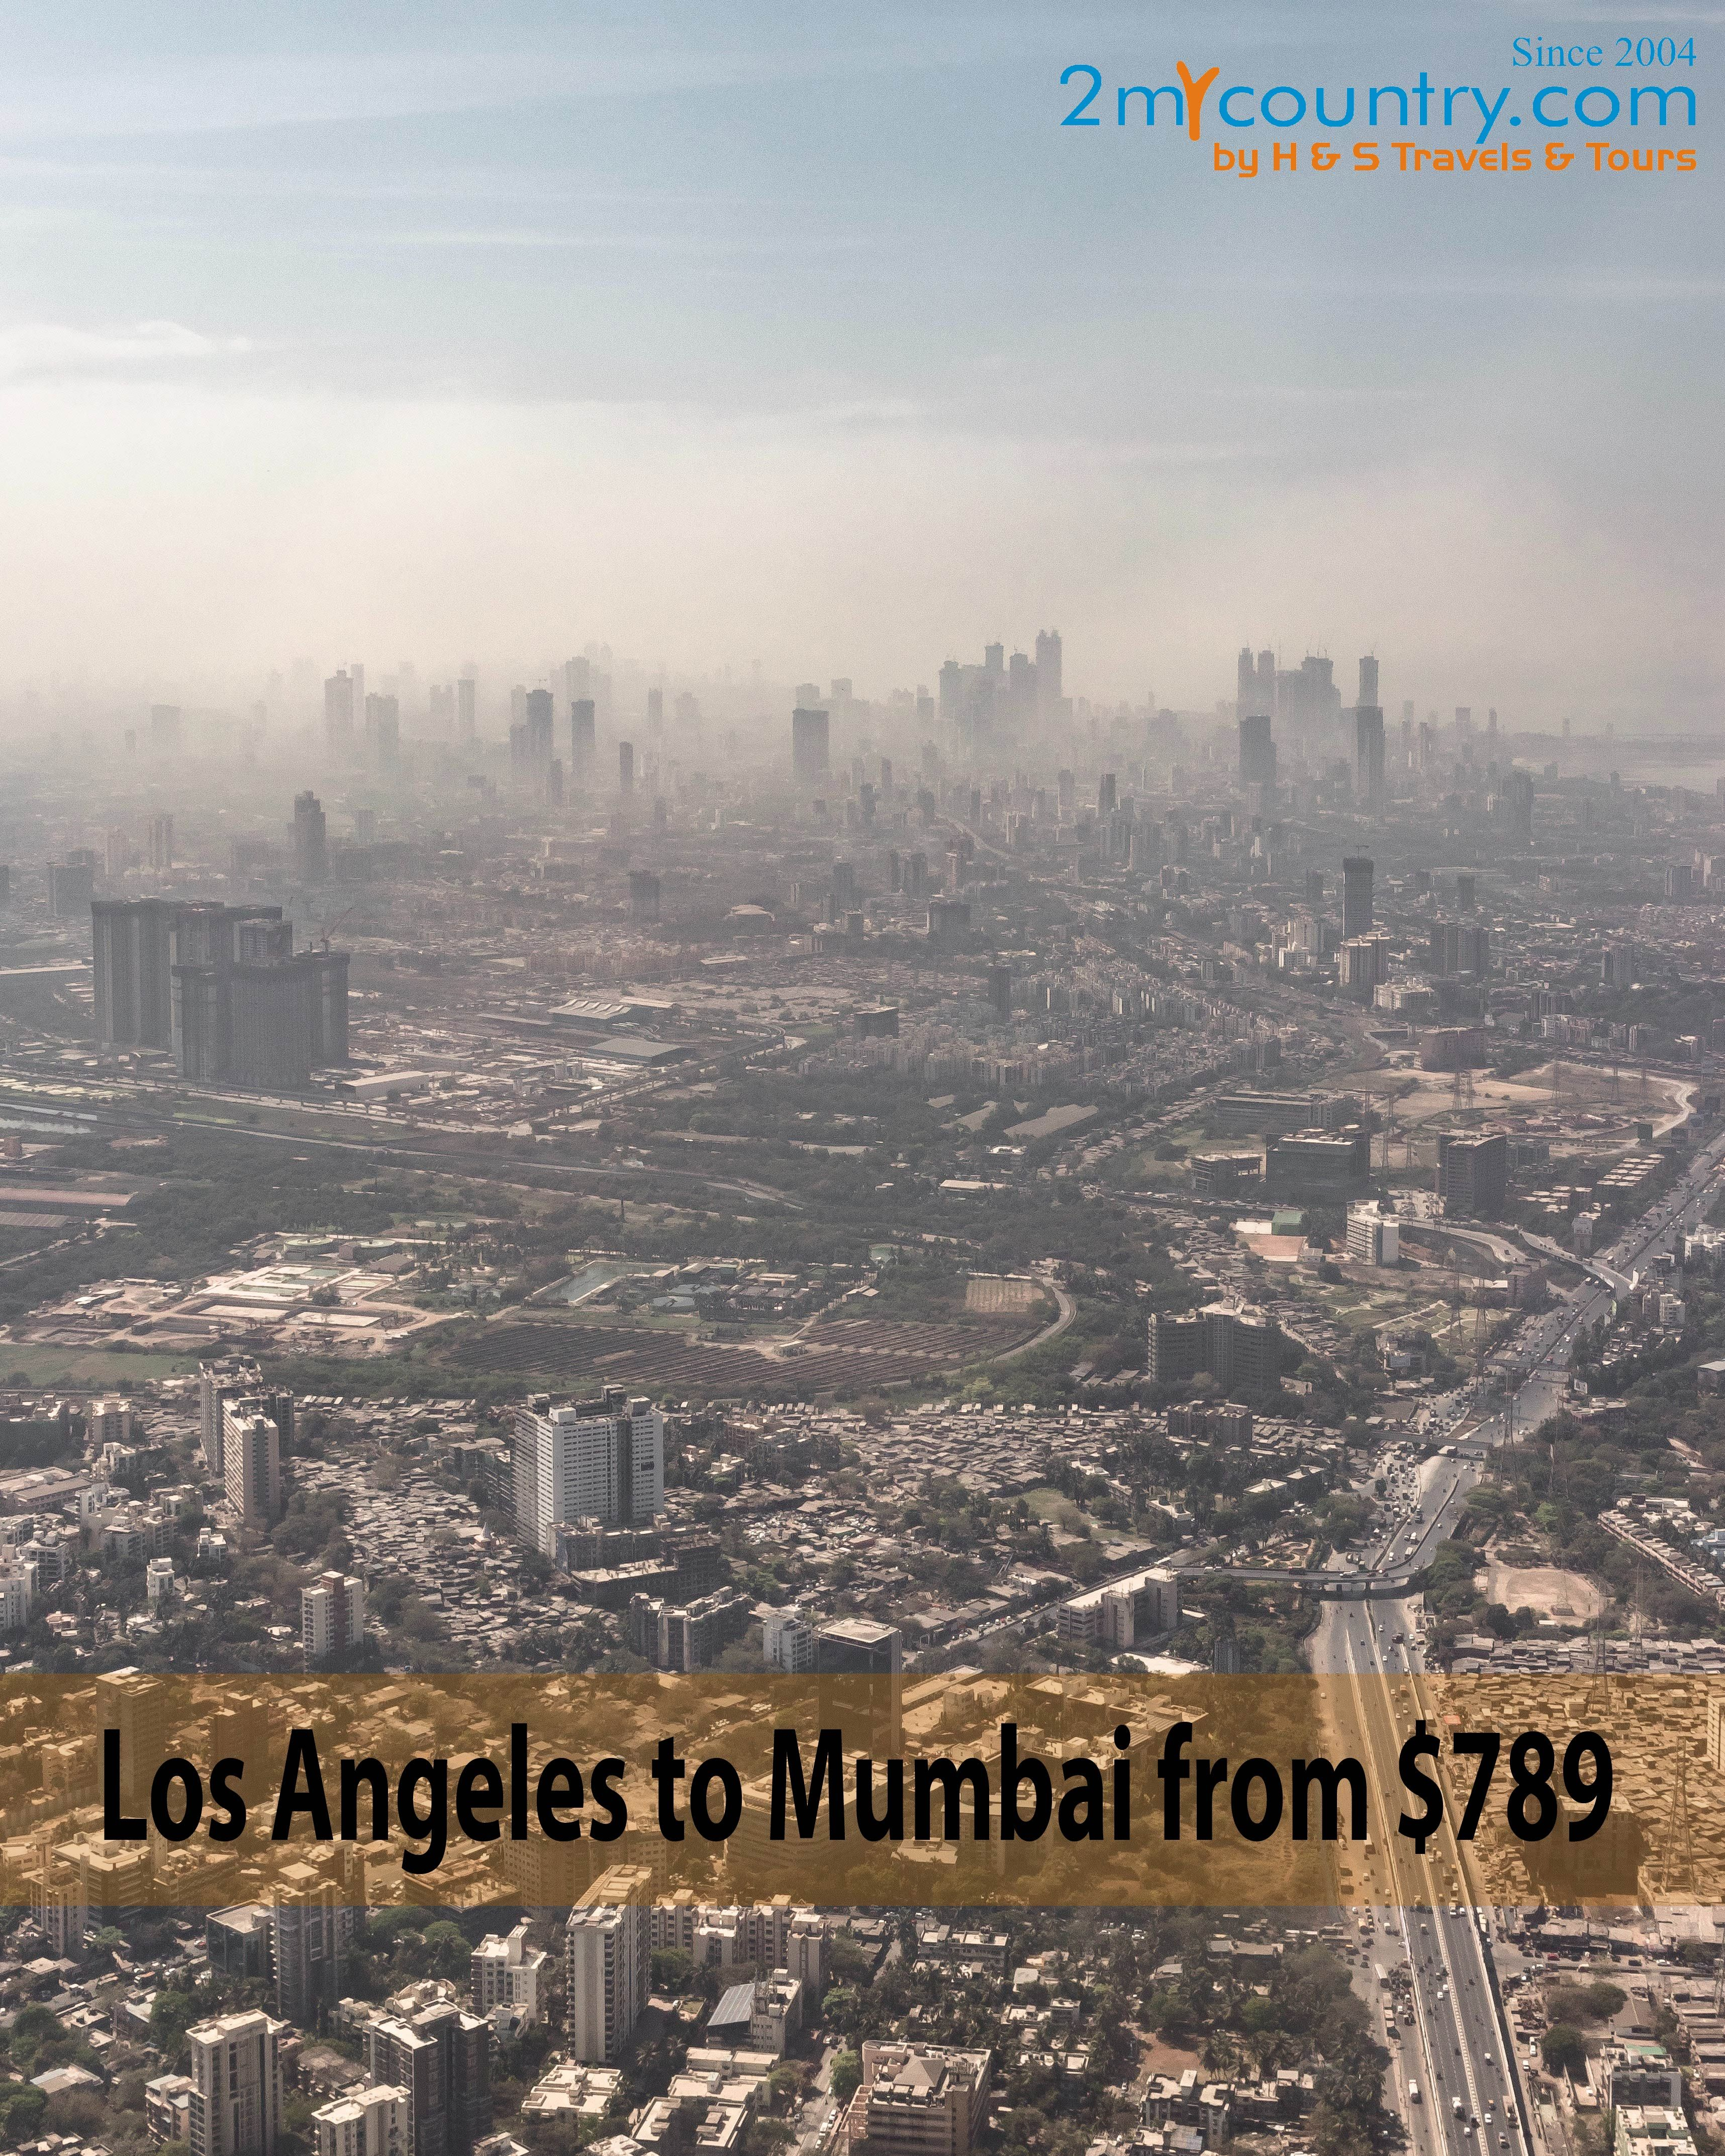 Now get Upto 20% Cashback to the wallet on Los Angeles to Mumbai ✈ tickets. Book Los Angeles to Mumbai flight ticket at cheap airfares with 2mycountry.  #Cheaptickets #laxtobom #airfaredeals #2mycountry #laxtobom #flights #flighttickets #travel #vacation #holiday #traveller #travelphotography #travelingram #travelblog #travelblogger #tourism #tourist #traveltheworld